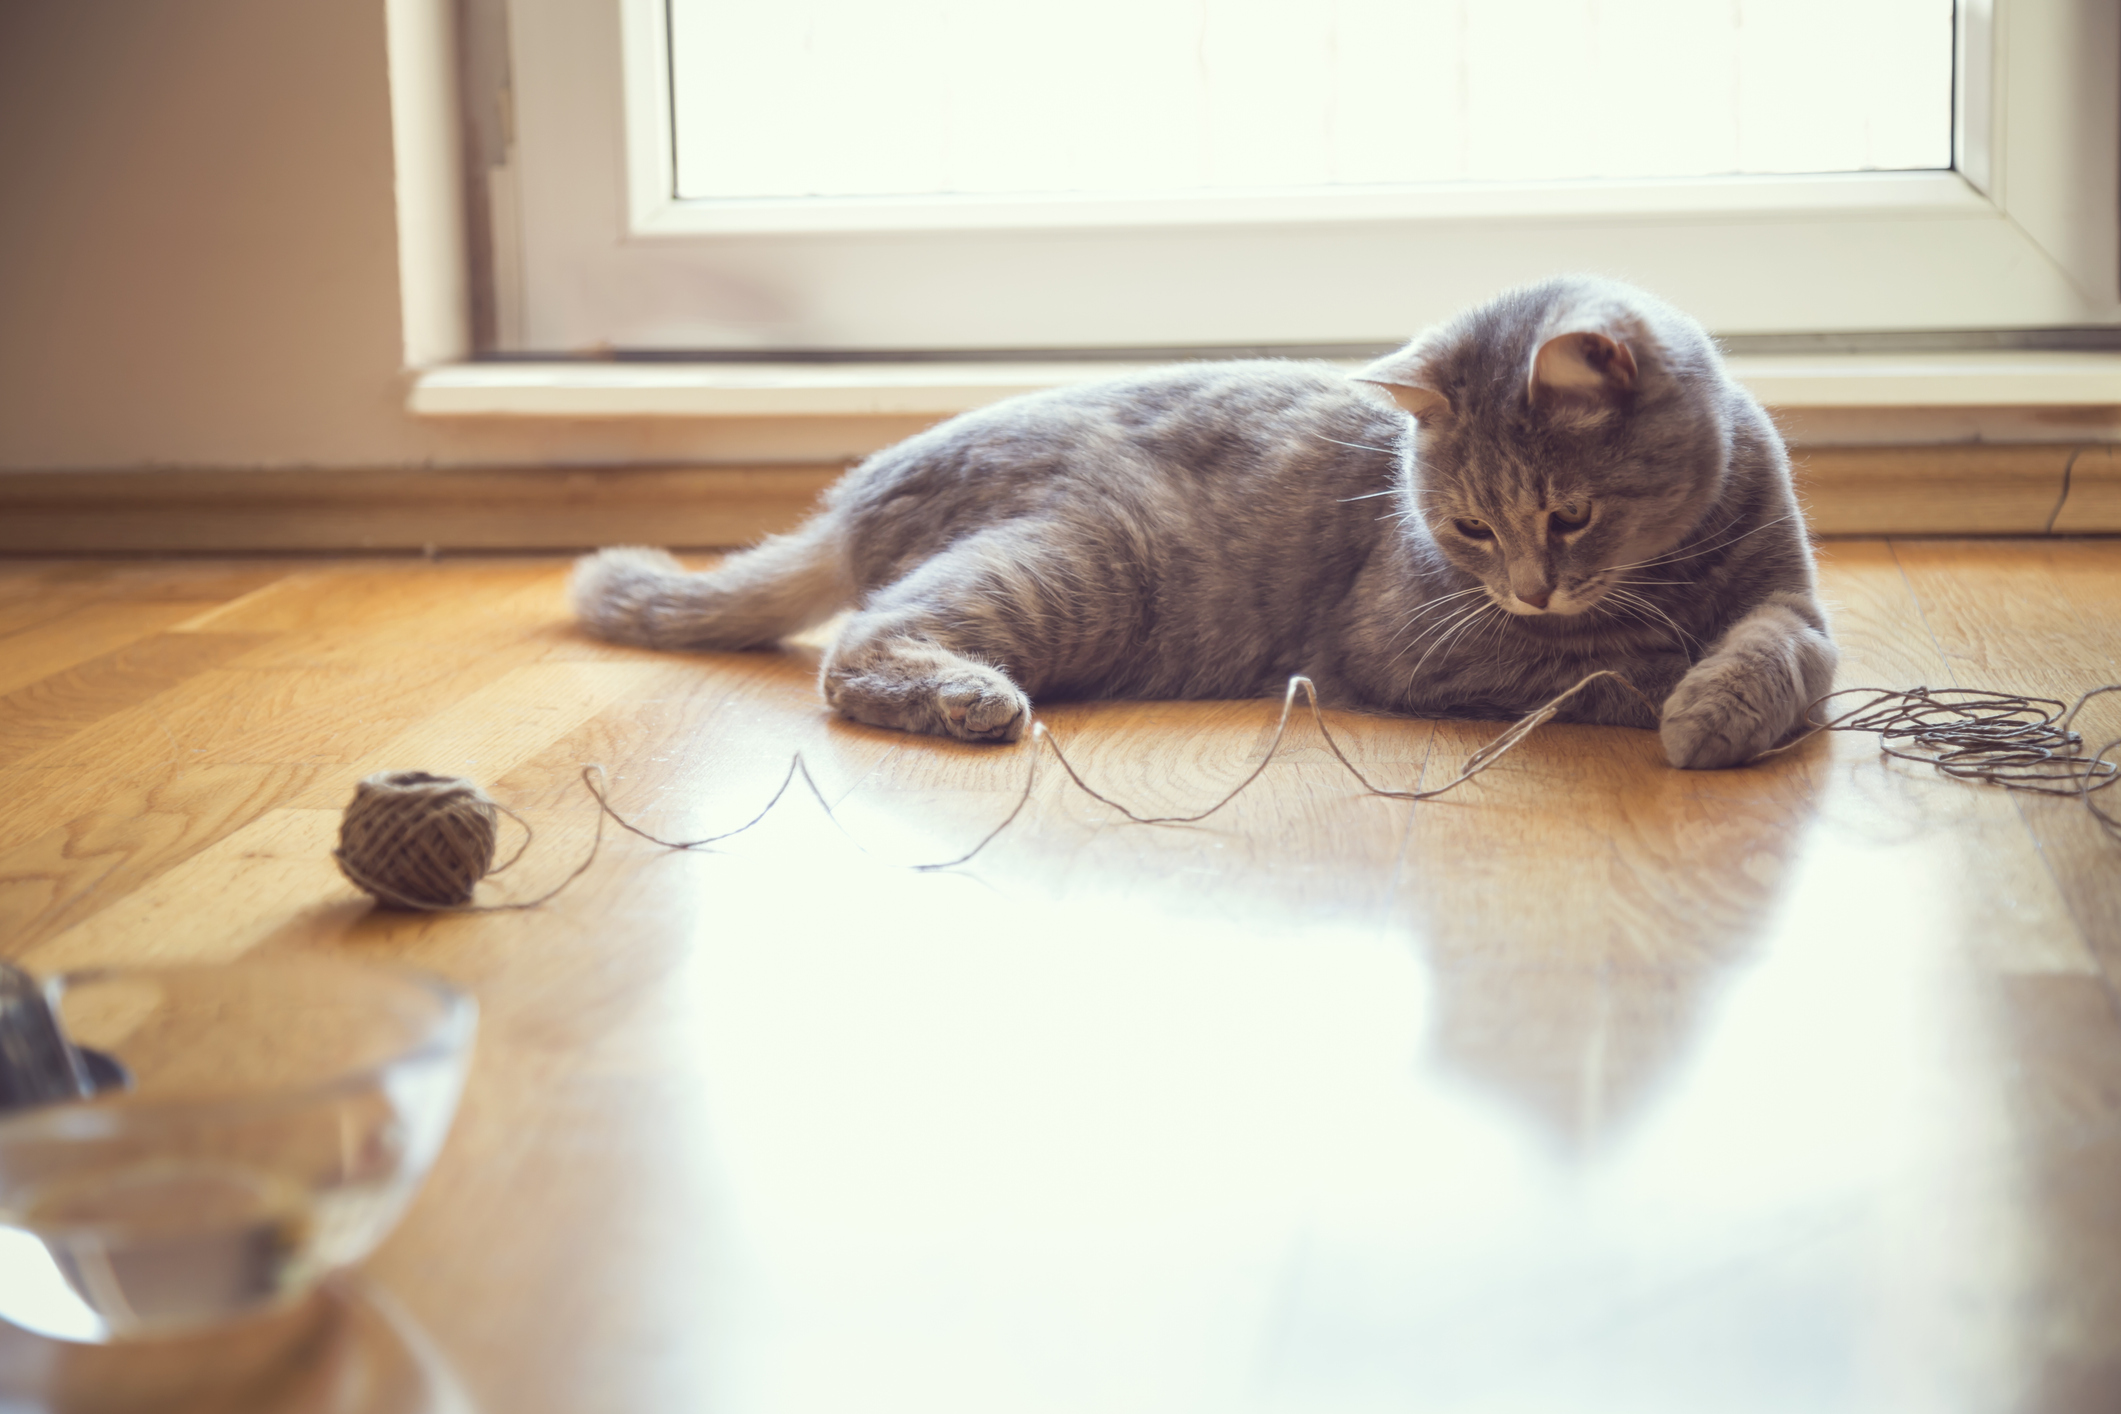 Cat Playing With A Ball Of String, Common Household Hazards For Cats, Household Cat Hazards, Pet Care Western MA, Pet Care Springfield MA, Pet Care Wilbraham MA